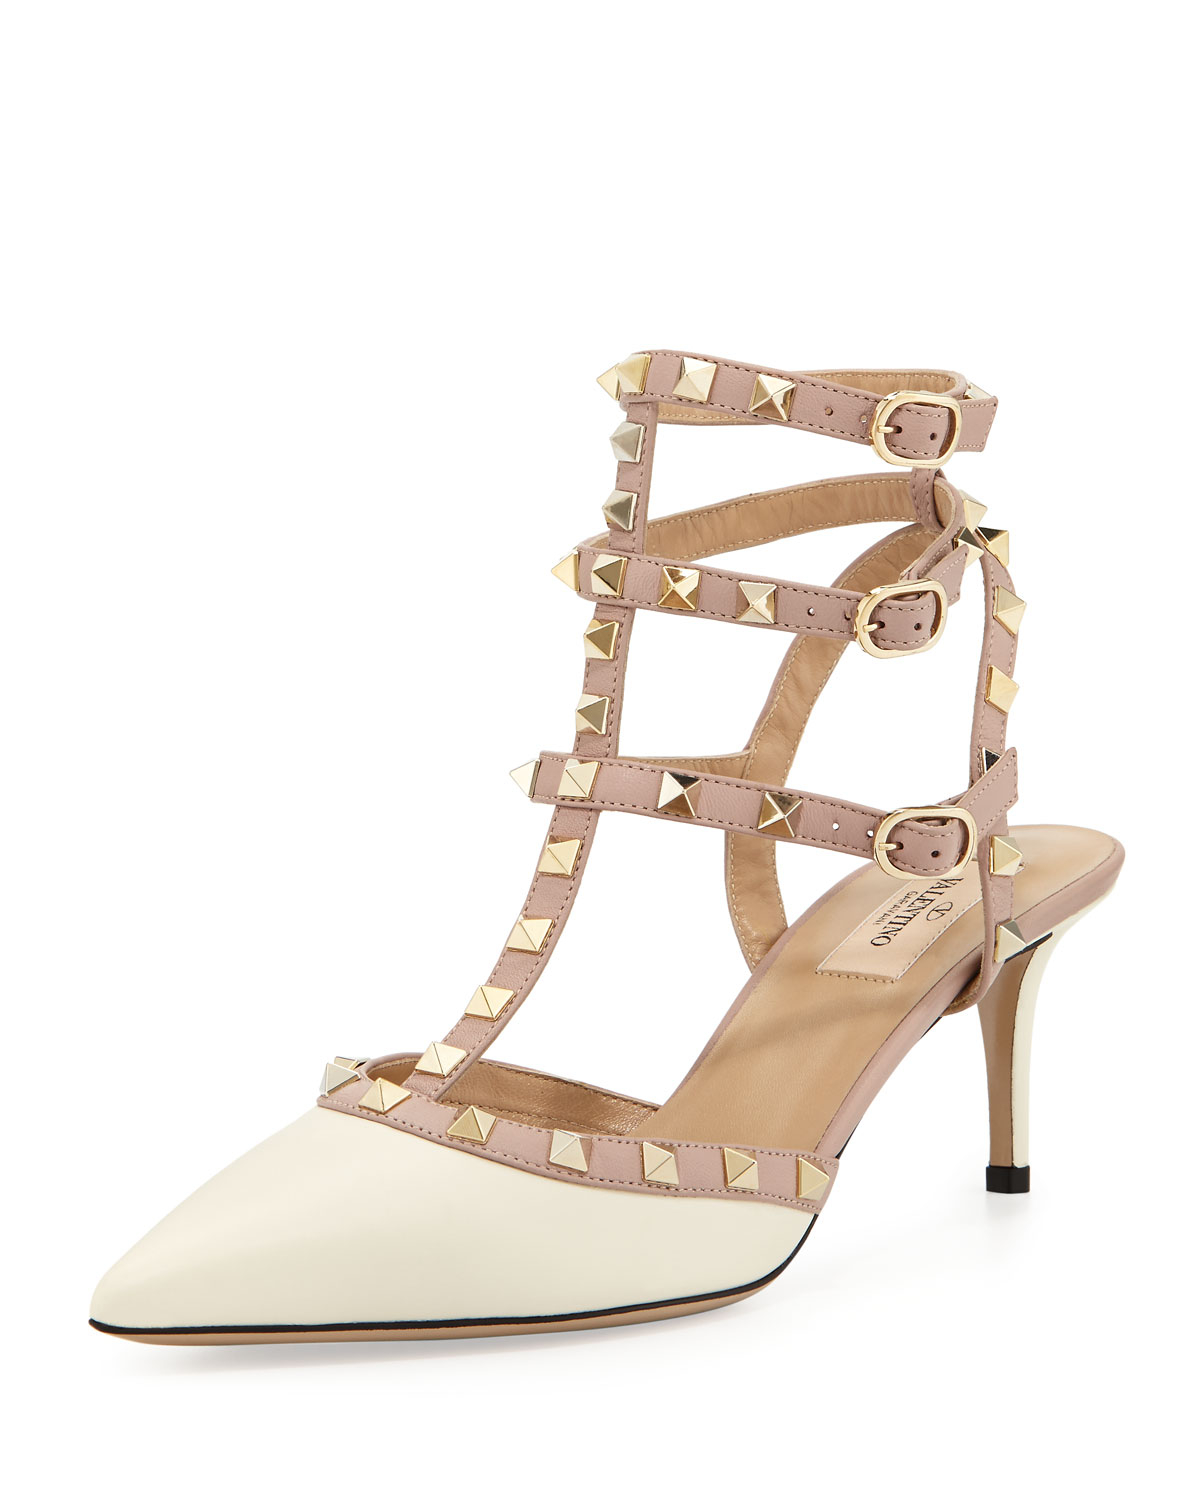 5297cc05590 Valentino Rockstud Pointed Patent Pump White in Natural - Lyst